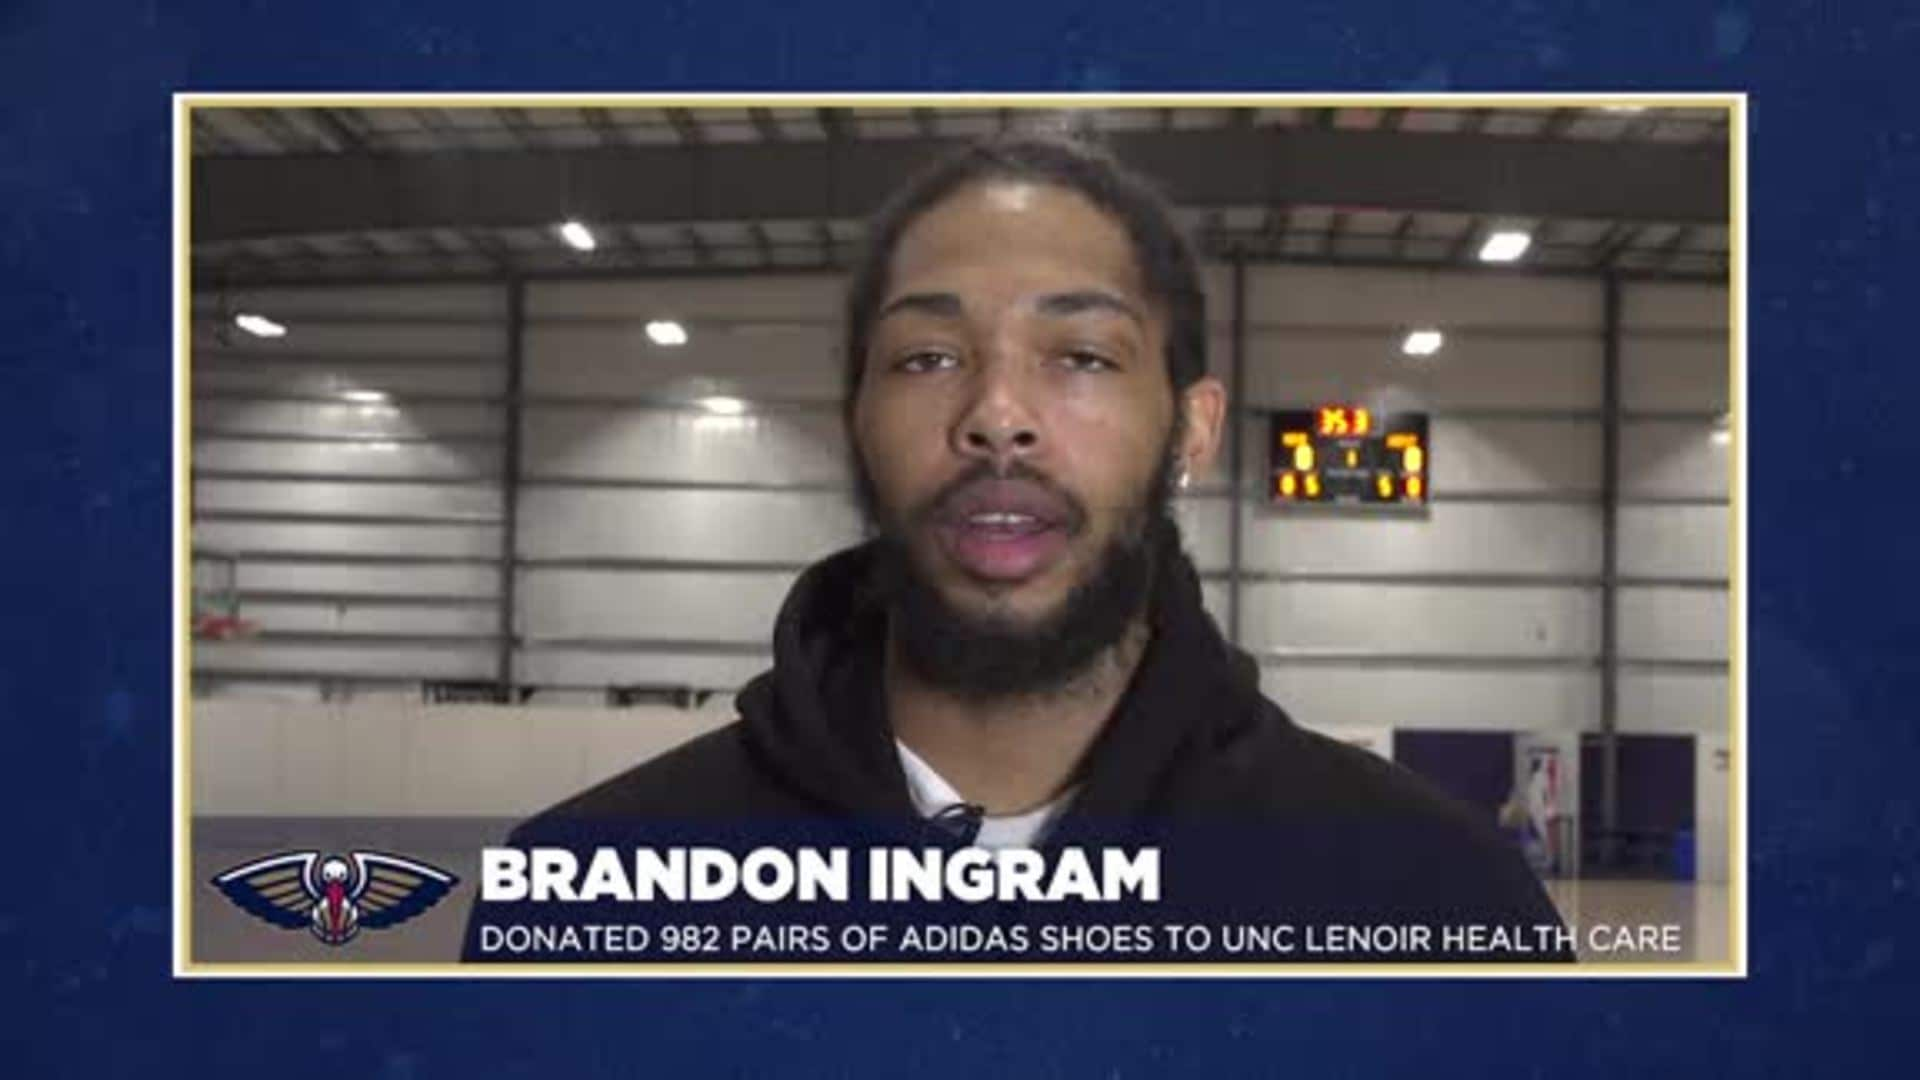 Brandon Ingram donates 982 pairs of shoes to frontline workers